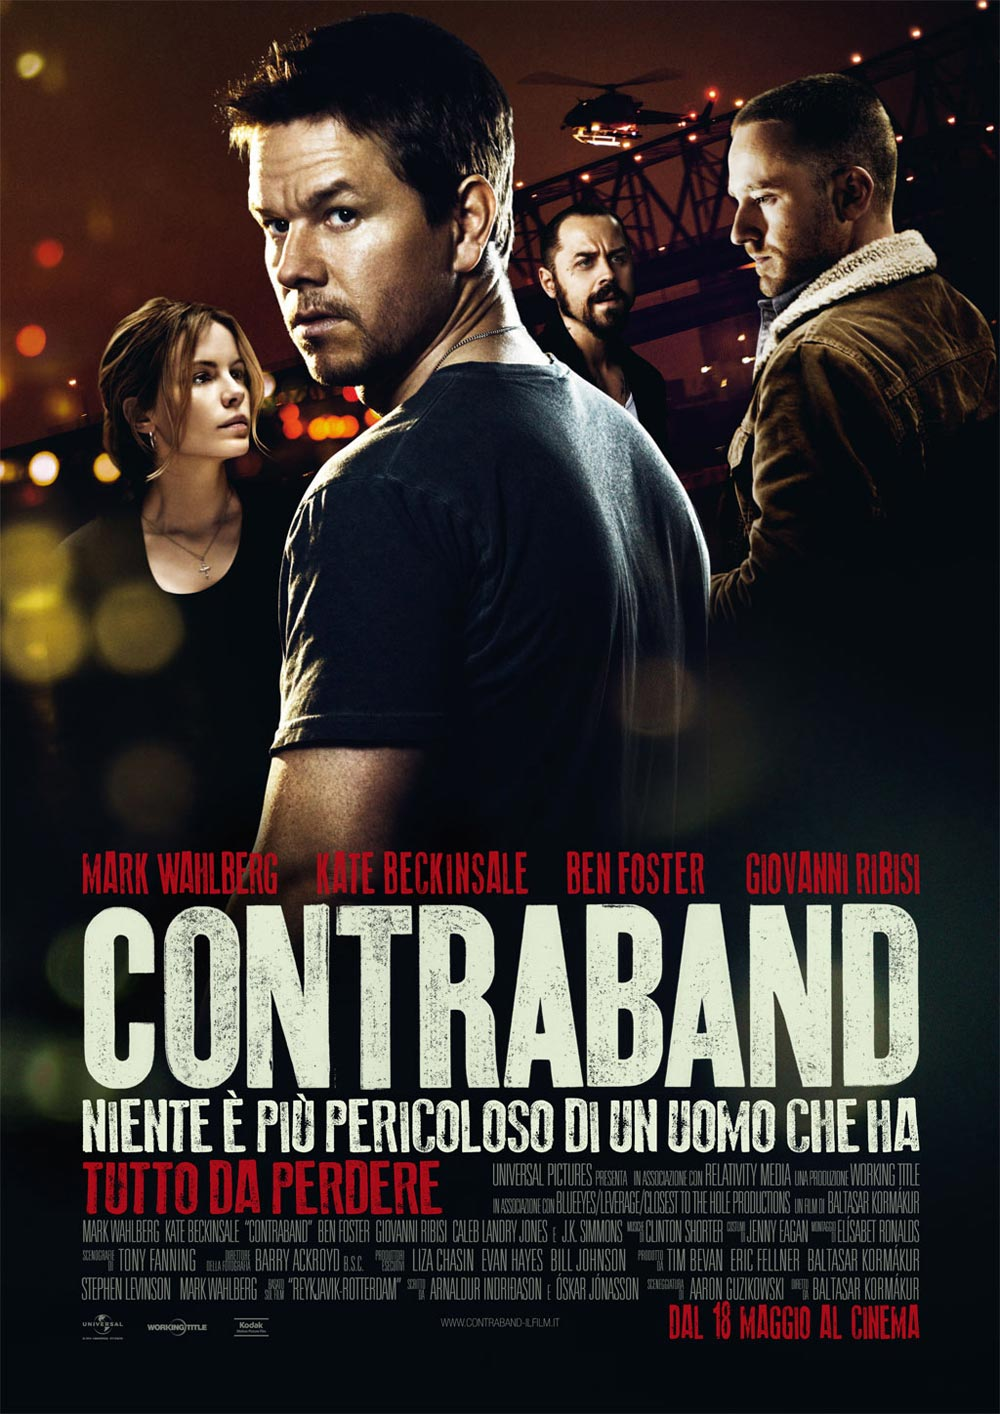 CONTRABAND is directed by Baltasar Kormákur and comes to theaters ...